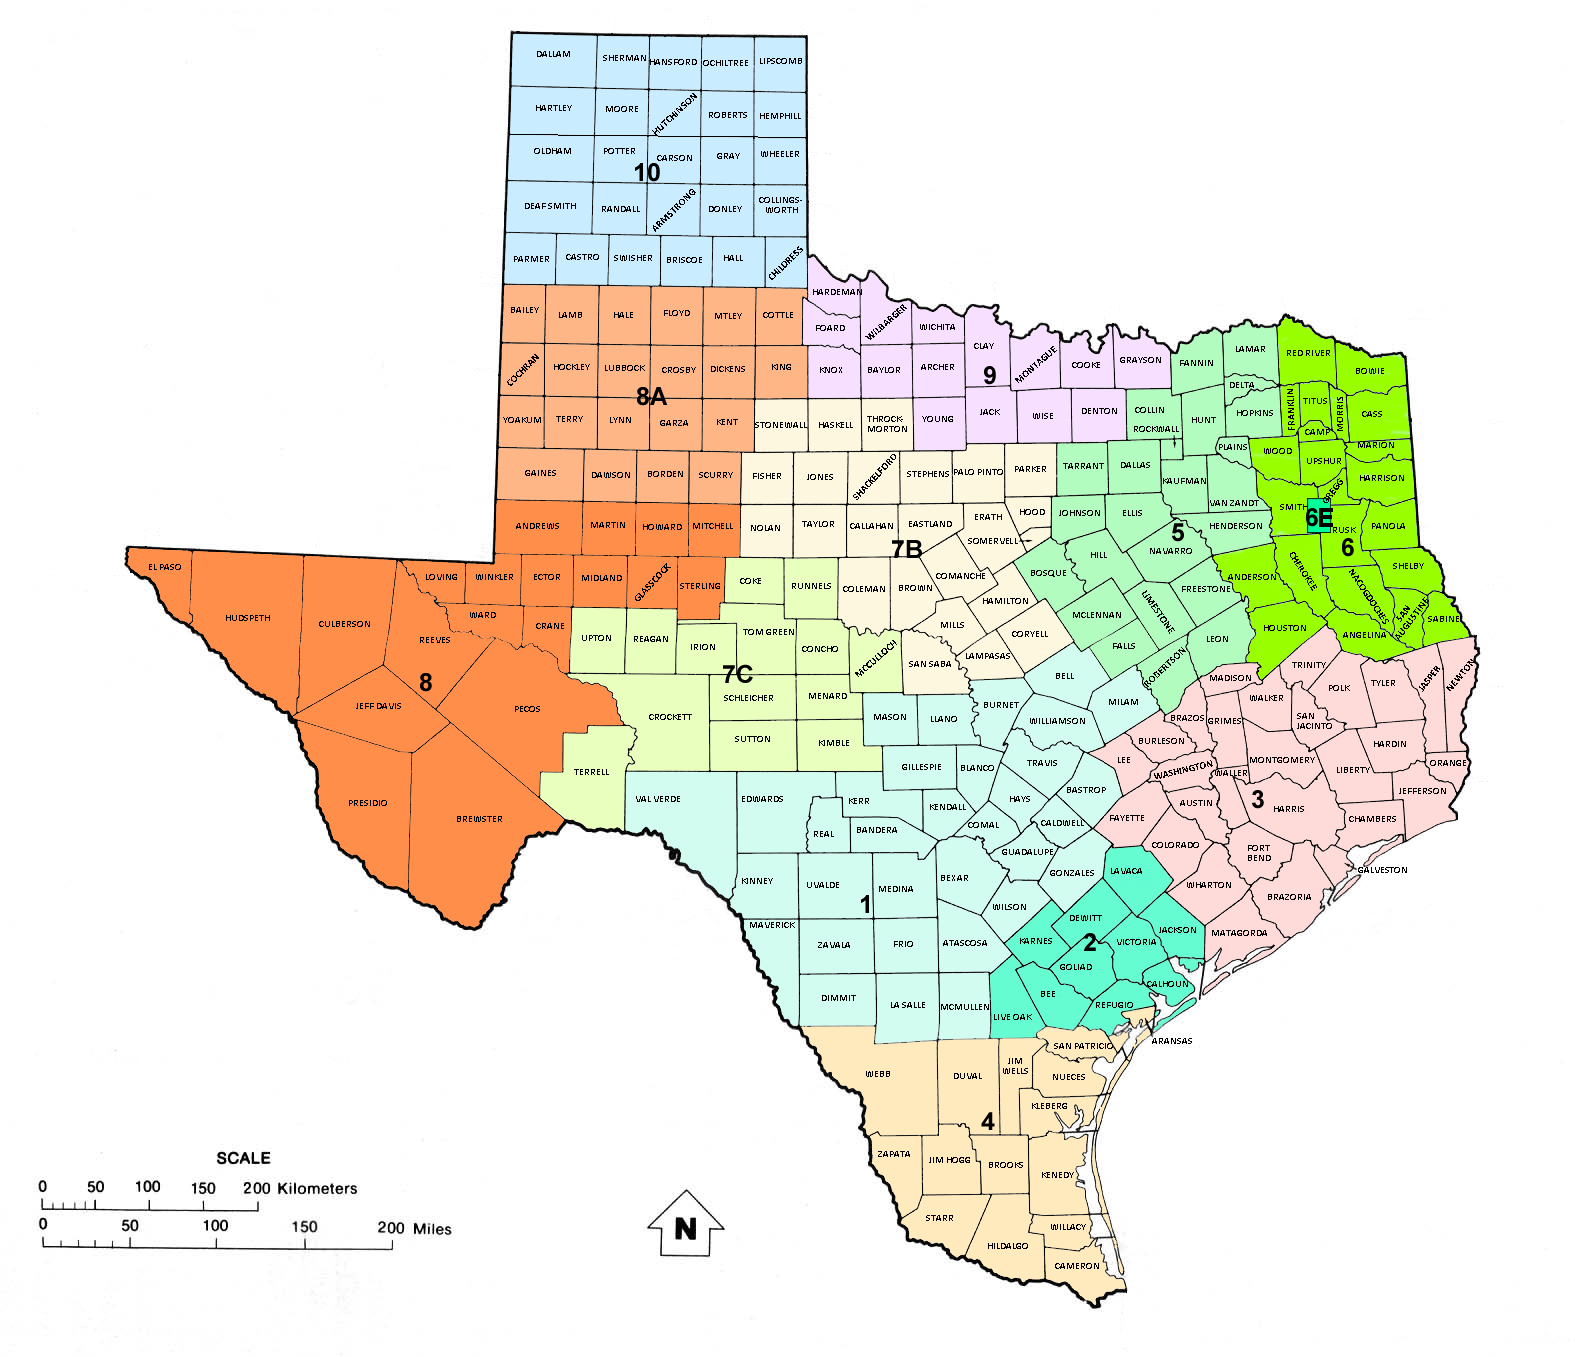 Texas Rrc Maps | Smoothoperators - Texas Rrc Gis Map